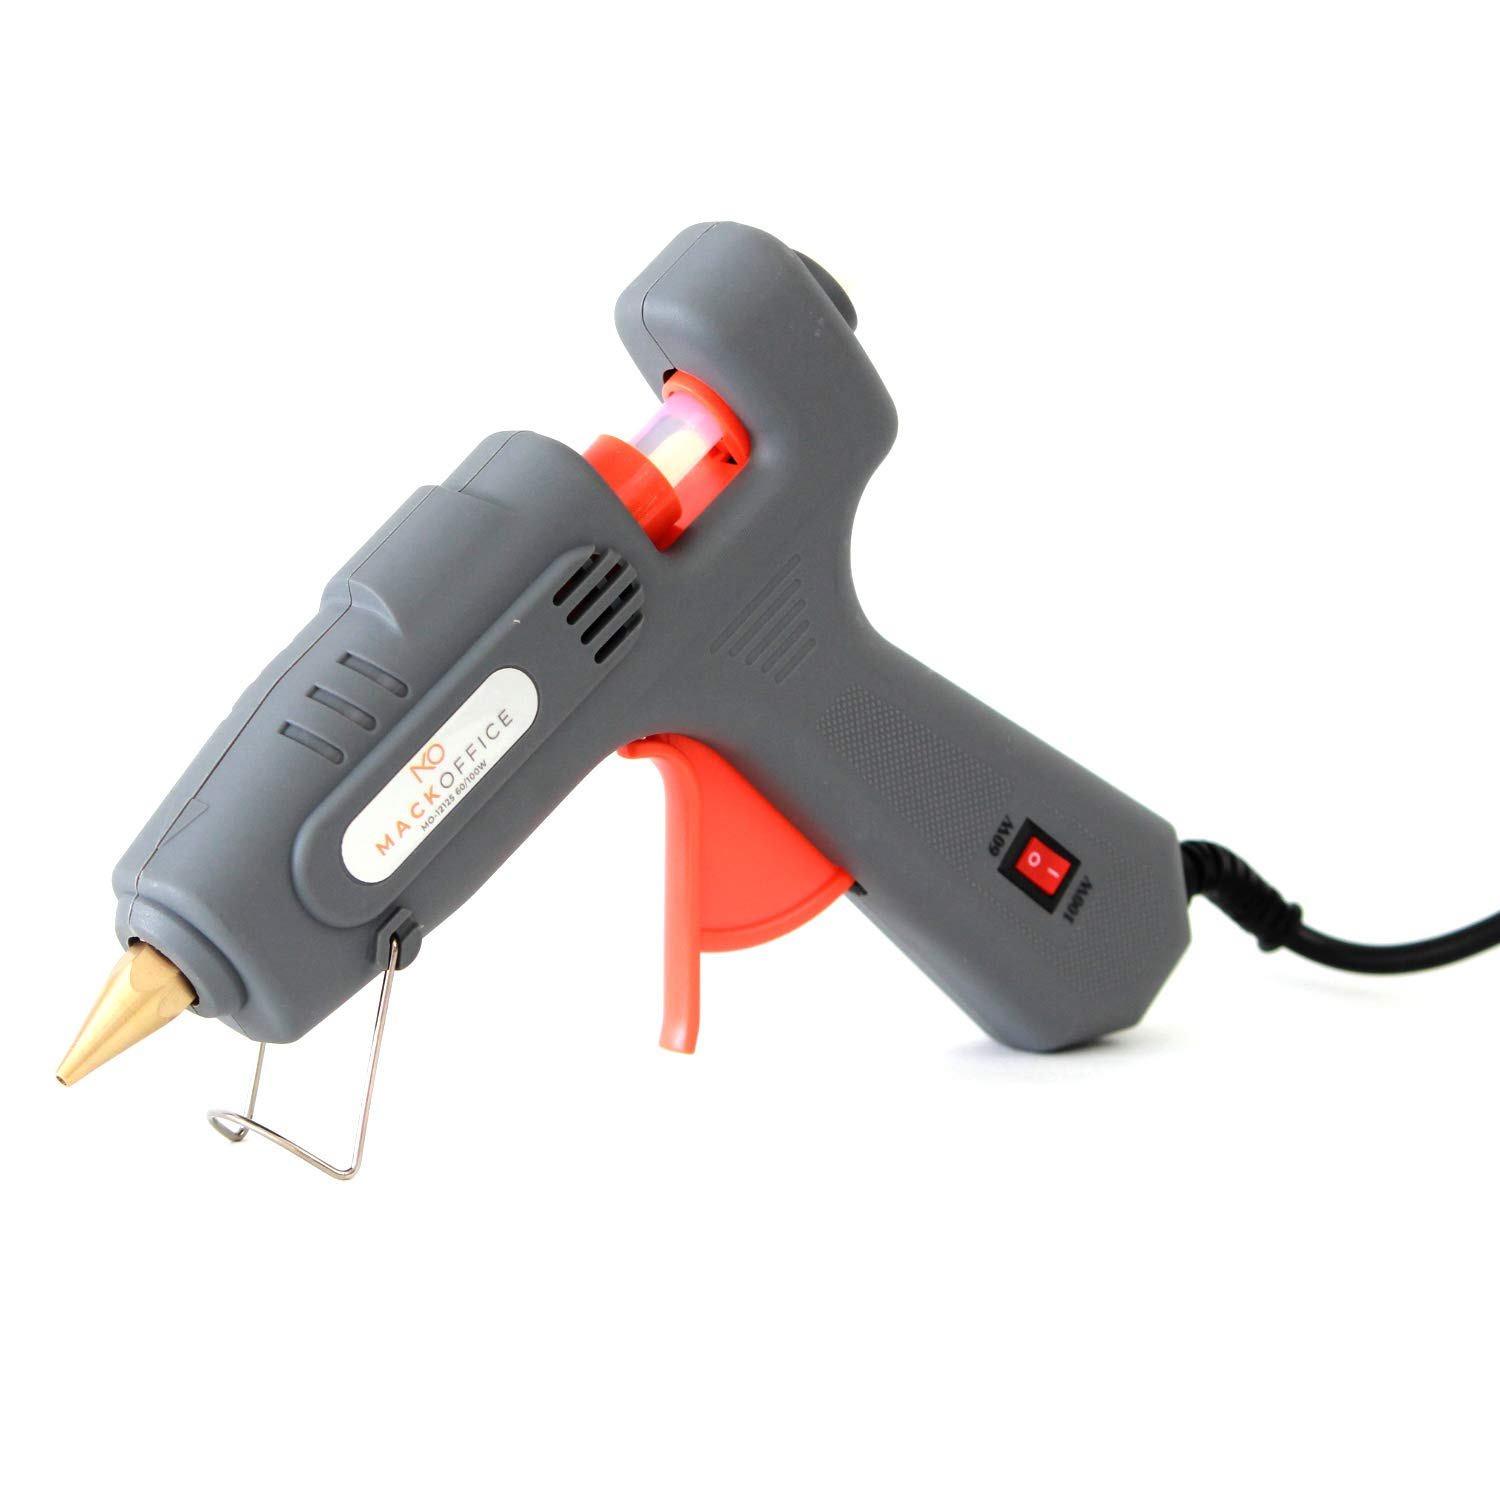 MackOffice Professional Glue Gun Full Size (Not Mini) Hot Melt Glue Gun 60/100W Dual Power High Temp Heavy Duty Melt Glue Gun best for Work | Home and for Arts & Crafts Use,Christmas Decoration/Gifts by MACKOFFICE (Image #1)